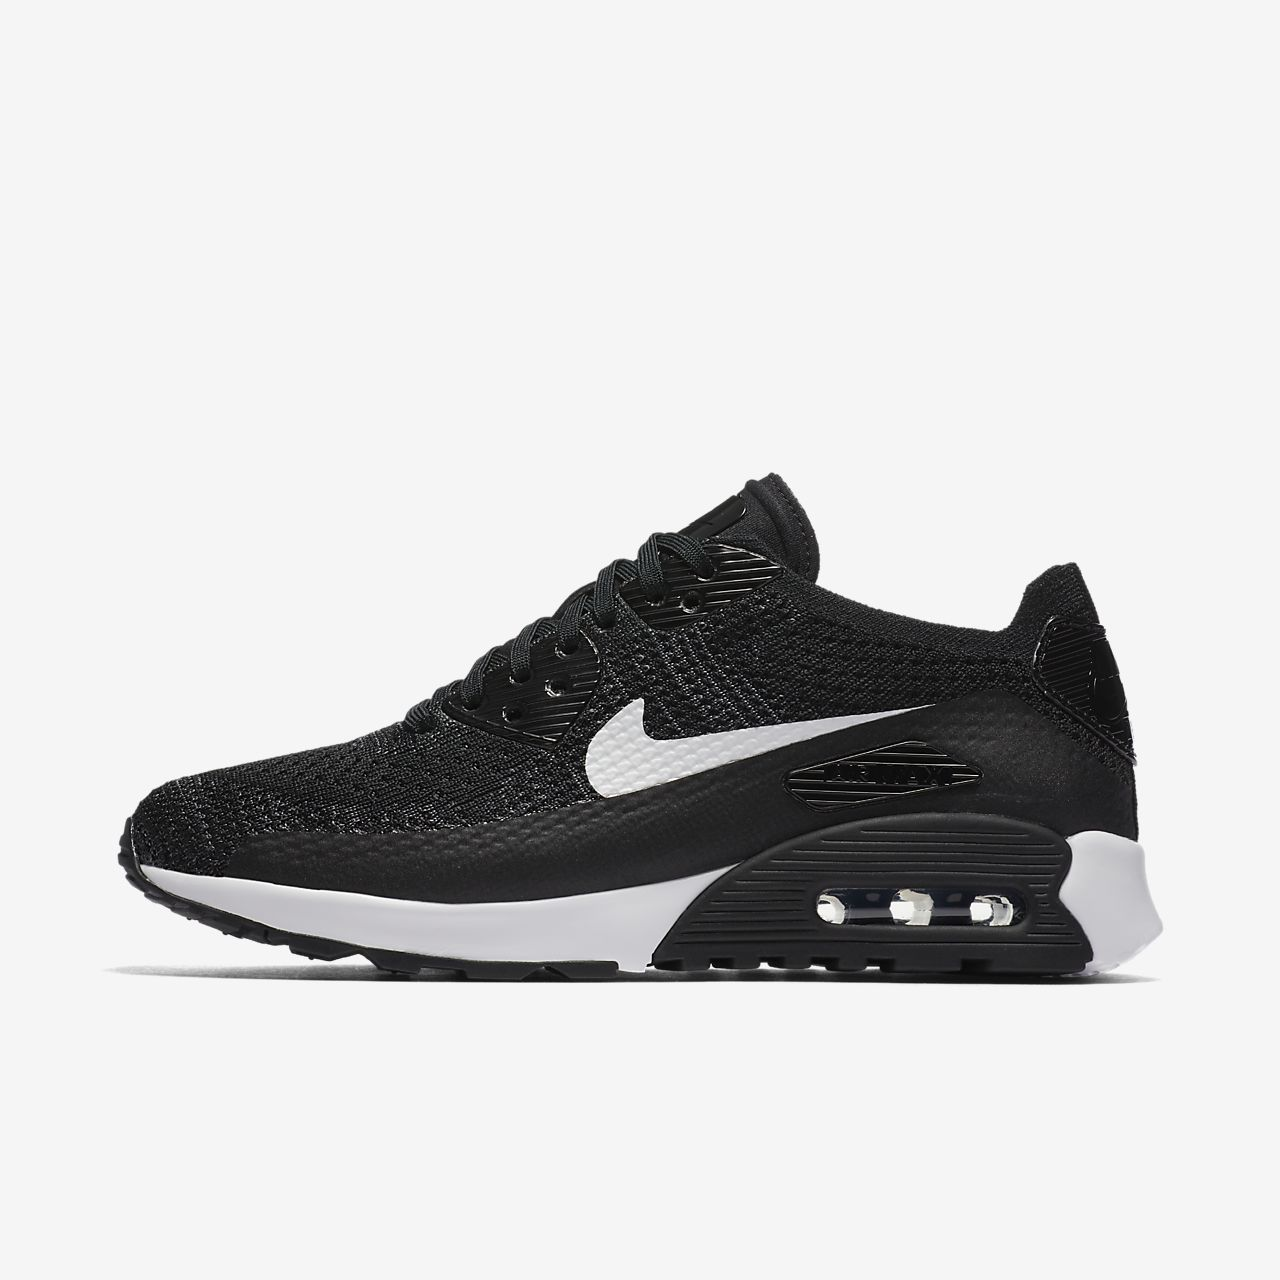 ... Nike Air Max 90 Ultra 2.0 Flyknit Women's Shoe